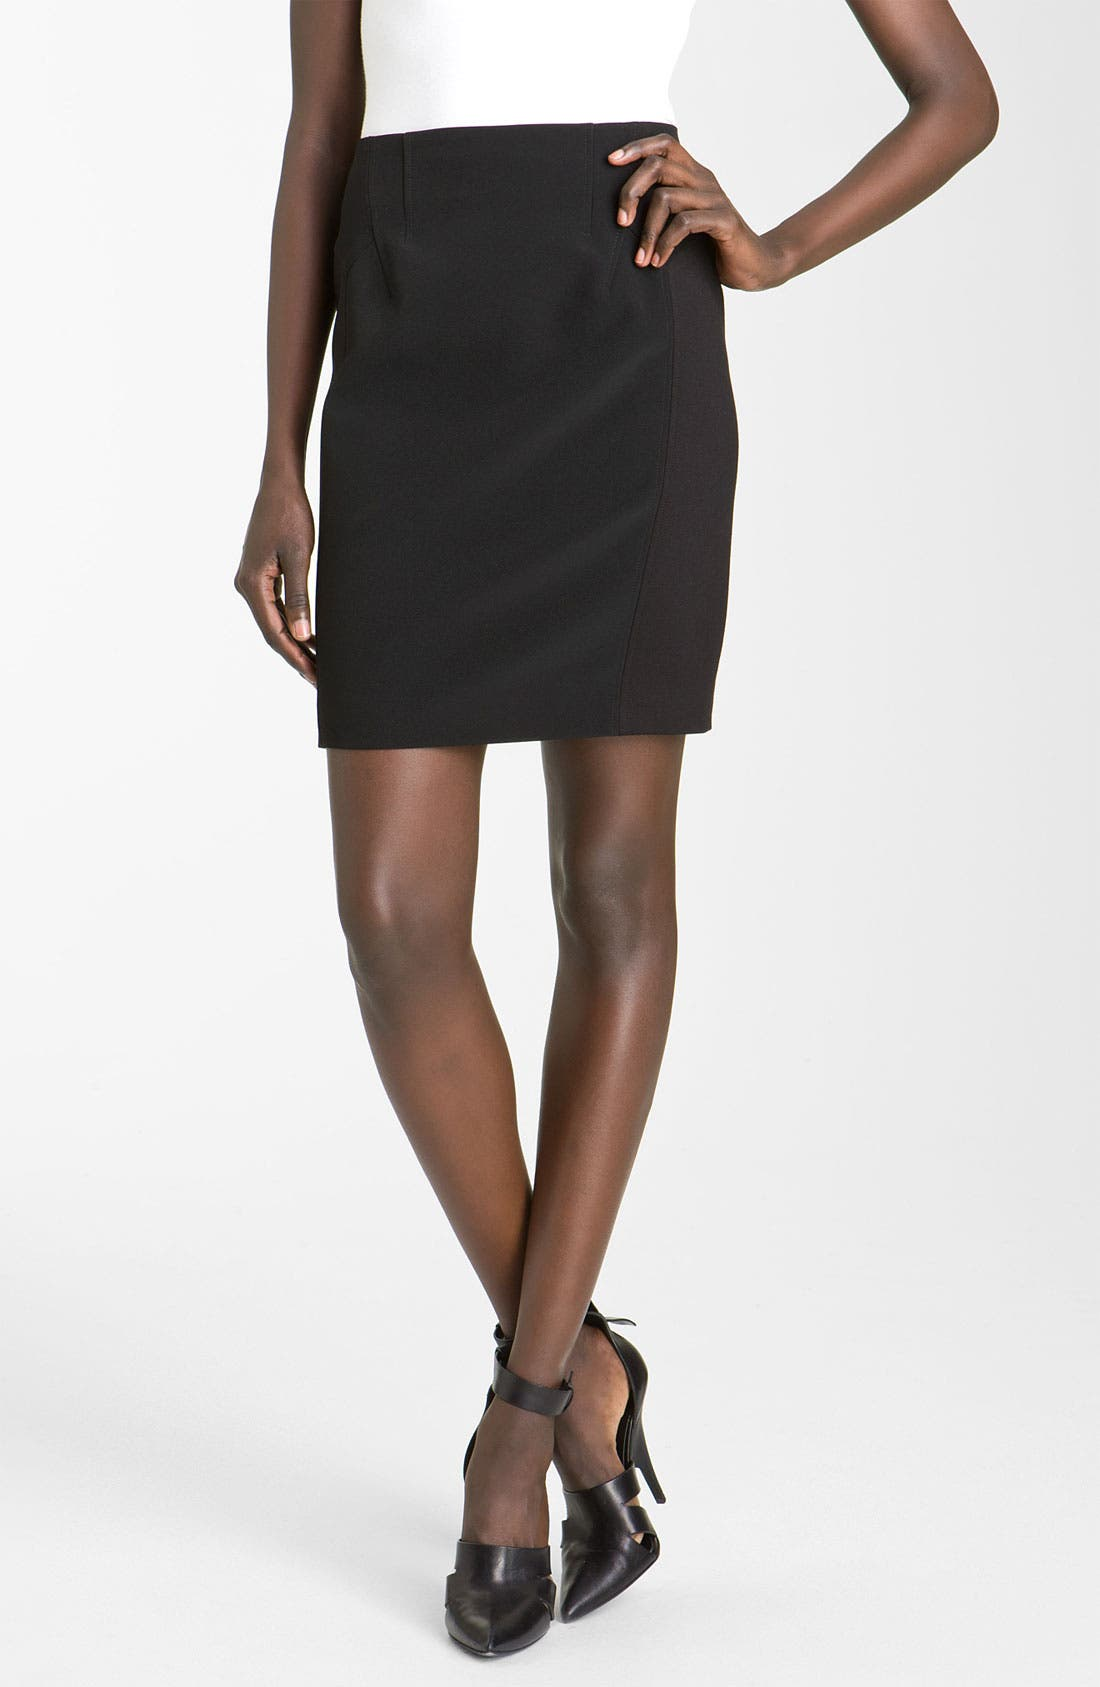 Alternate Image 1 Selected - Alexander Wang Contrast Panel Ponte Knit Skirt